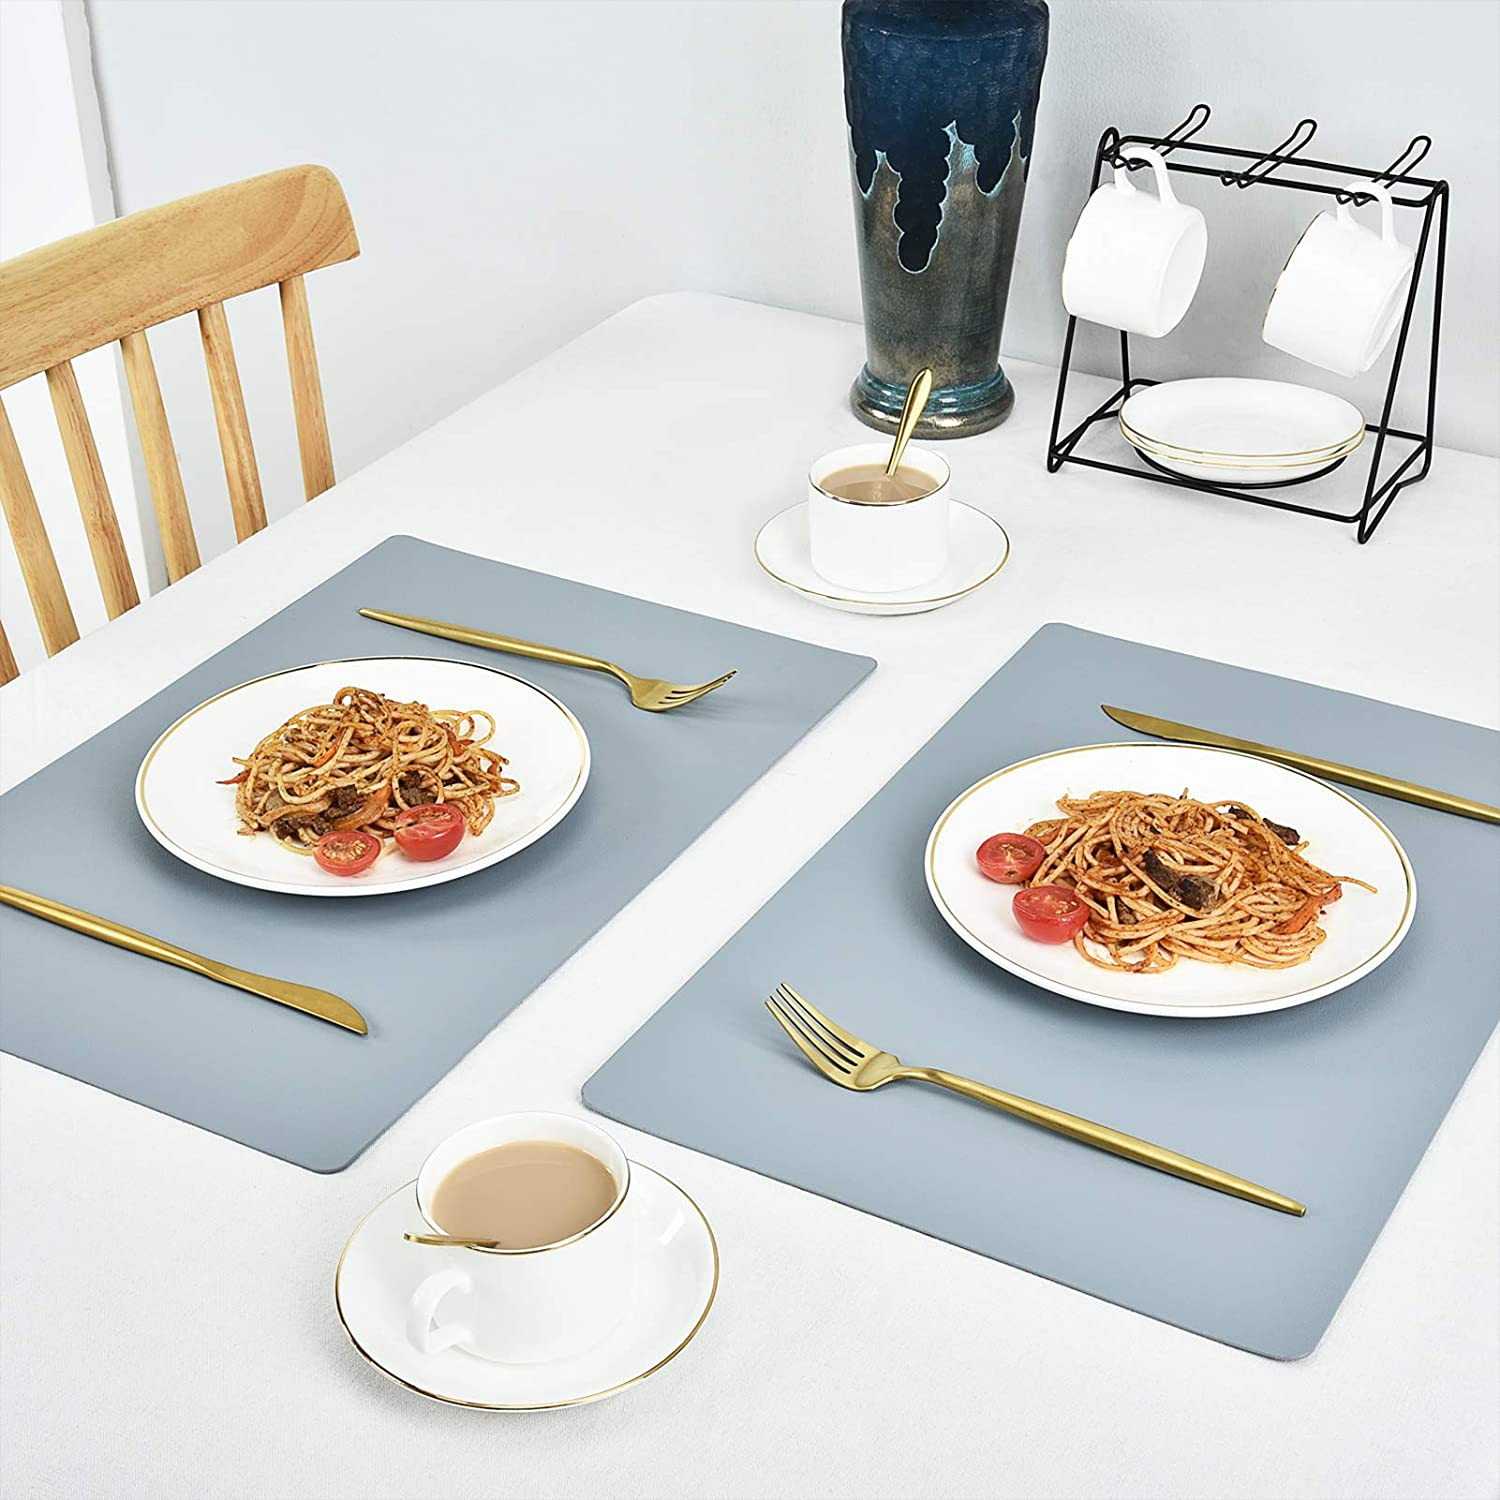 Dinging Home Kitchen Decor Black JTX Placemats for Dining Table Leather Placemats Set of 4 Easy Clean Heat /& Stain Resistant Non-Slip Washable Table Mats